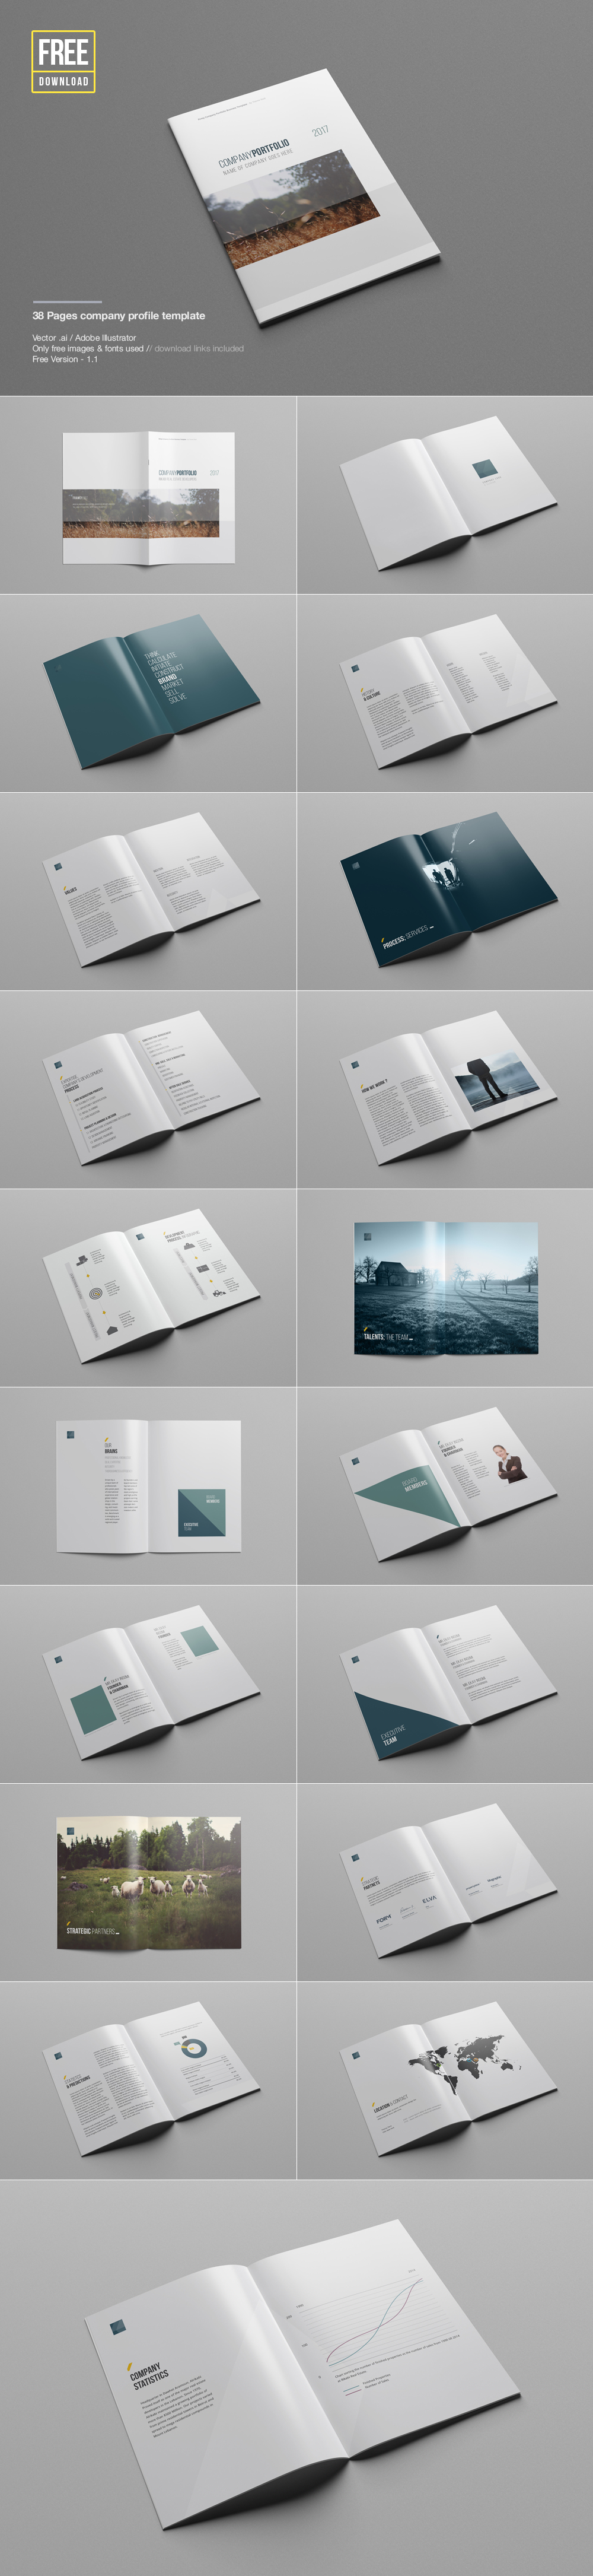 Business Company Profile Template Free Psd File On Behance  Free Business Profile Template